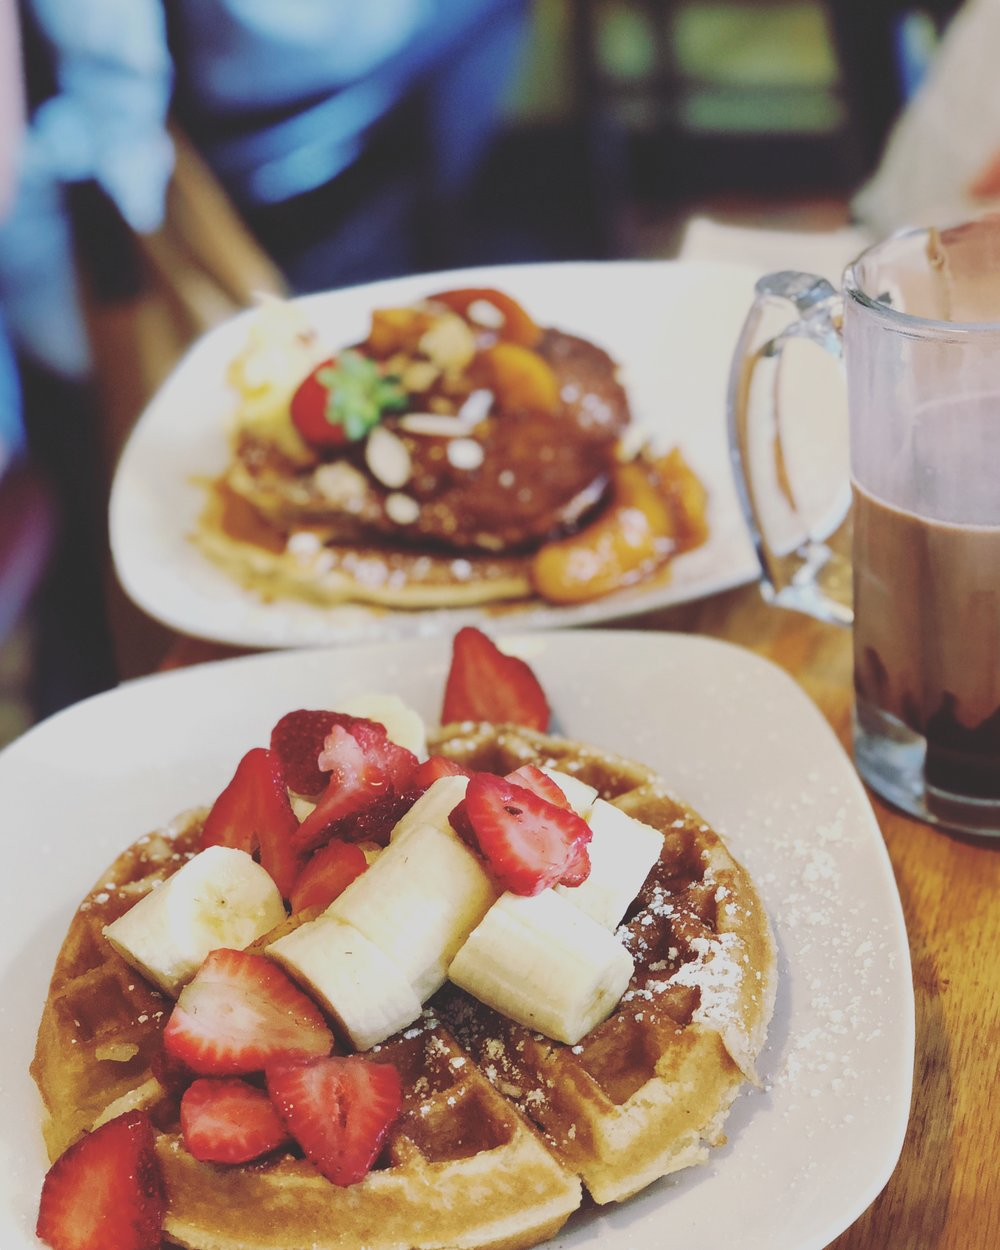 You can't ever go wrong with Belgian waffles and fruit !